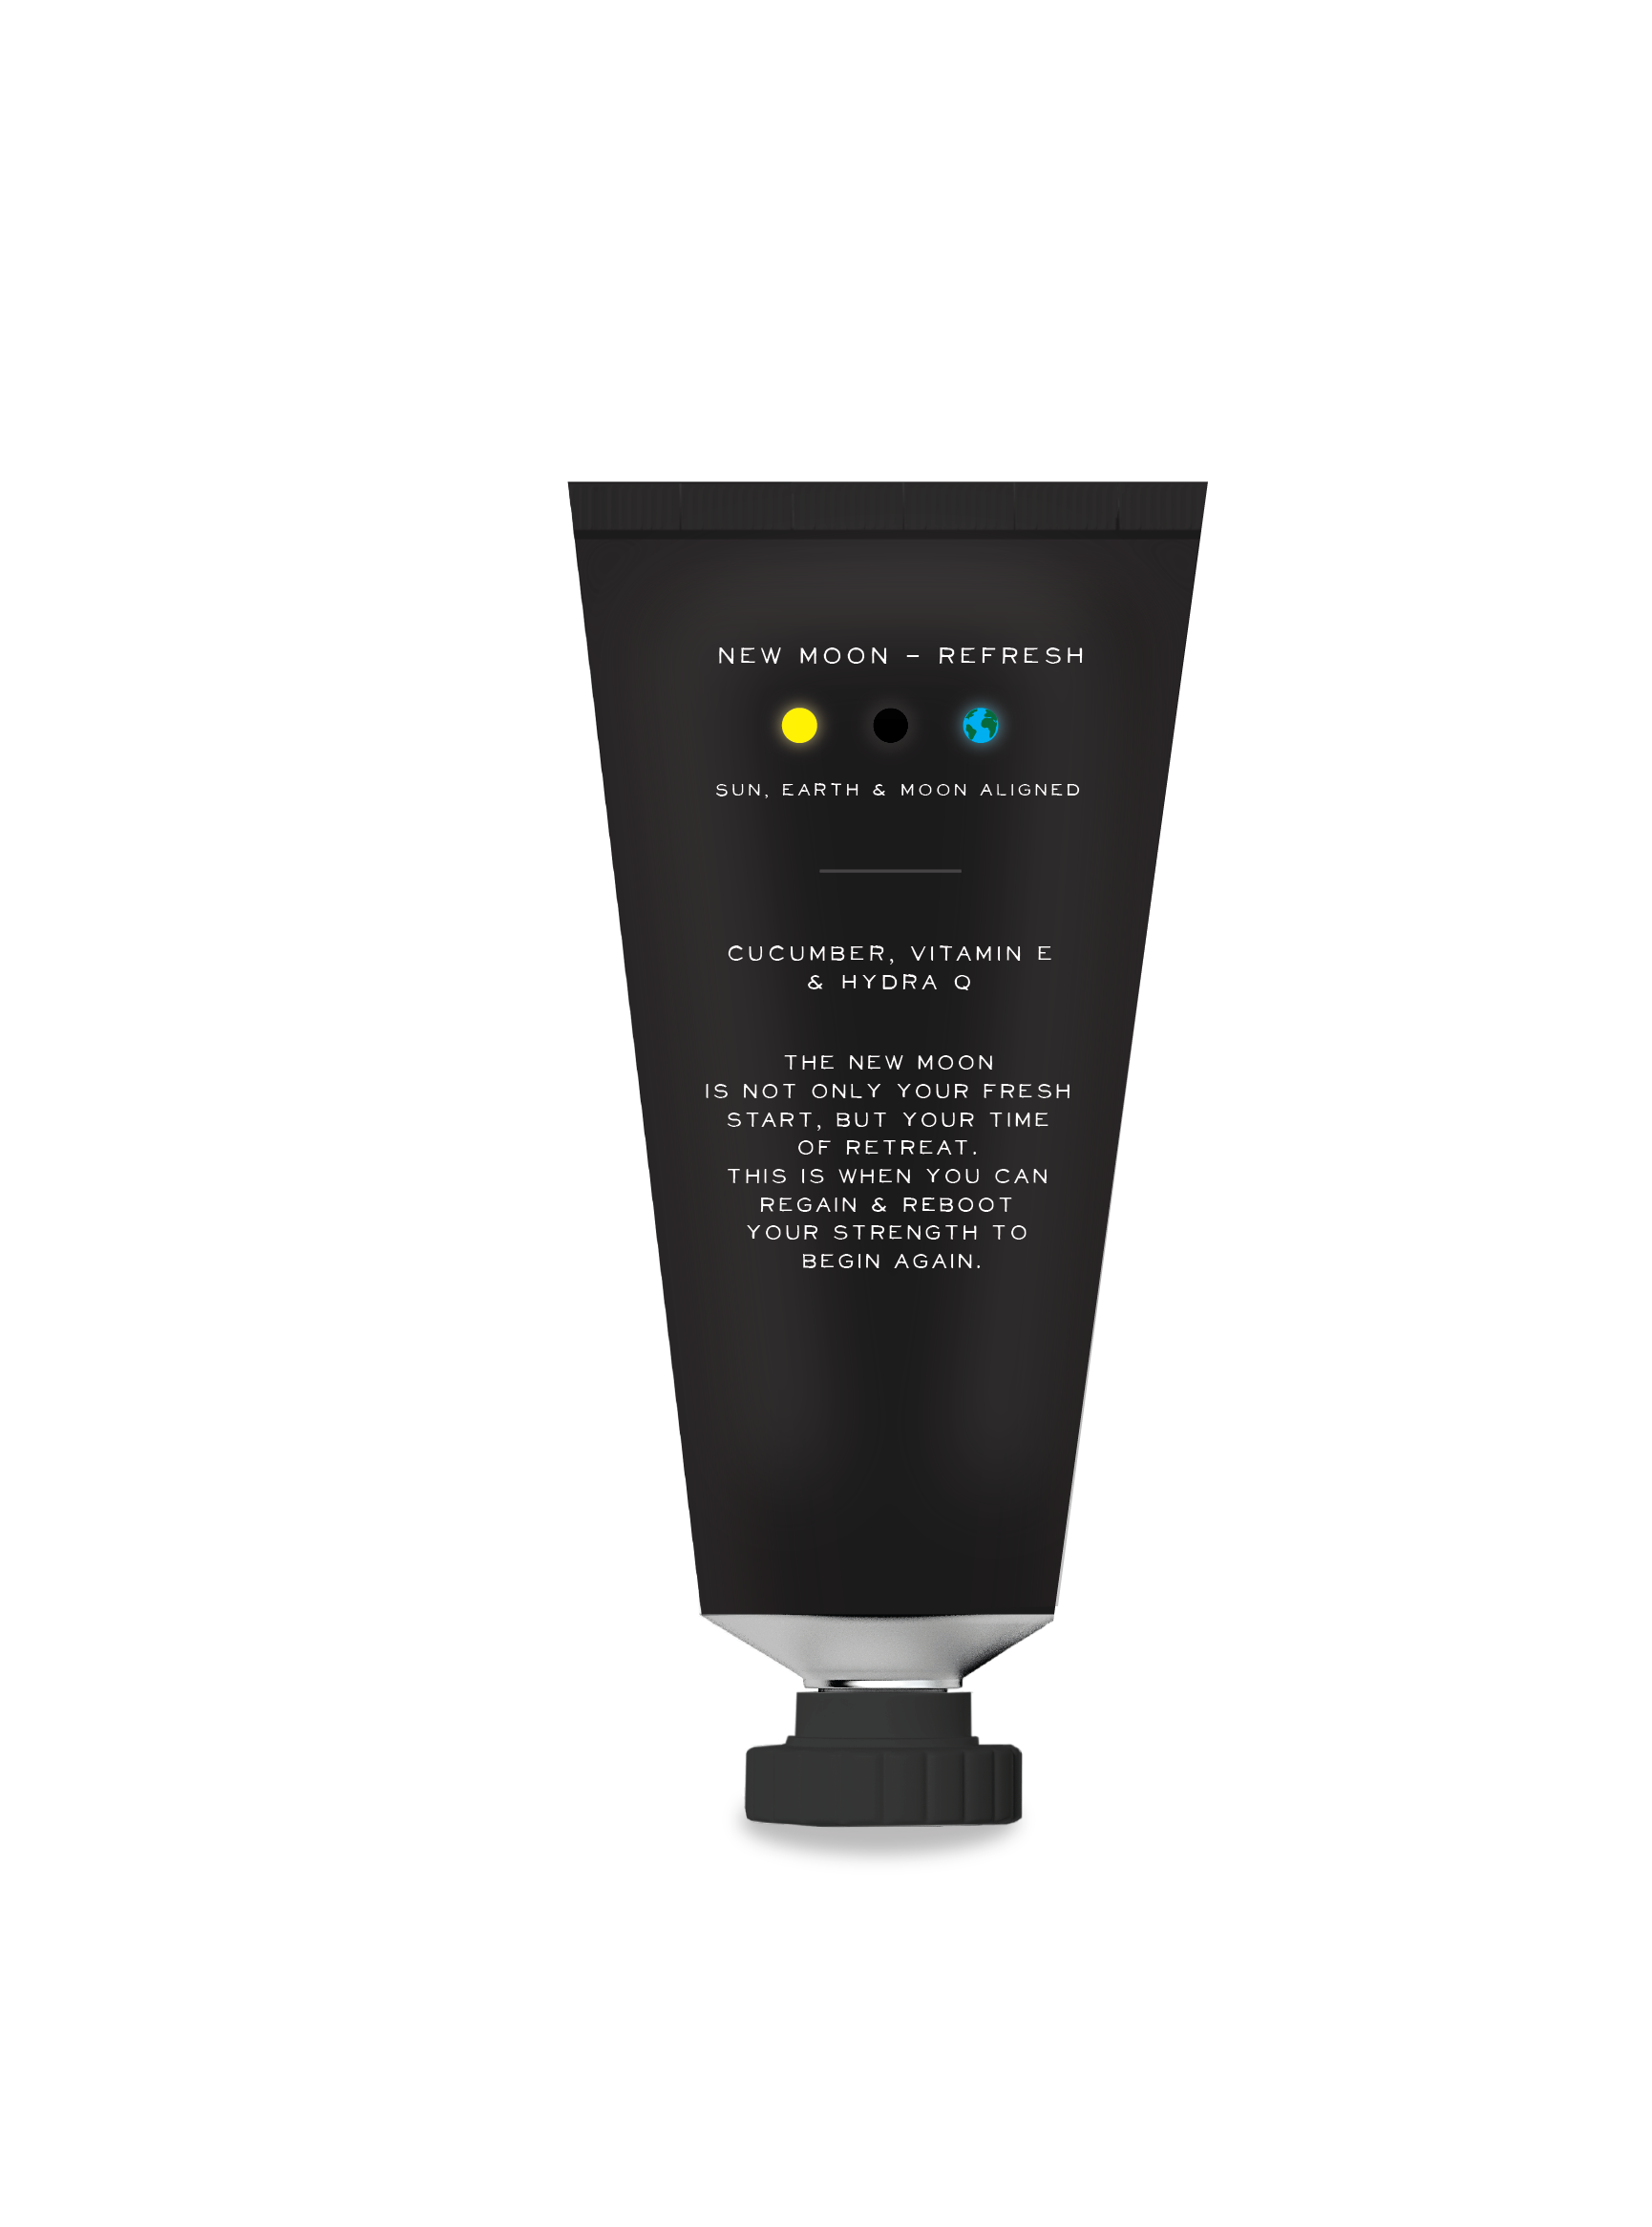 Eclisse_skin care-08.png